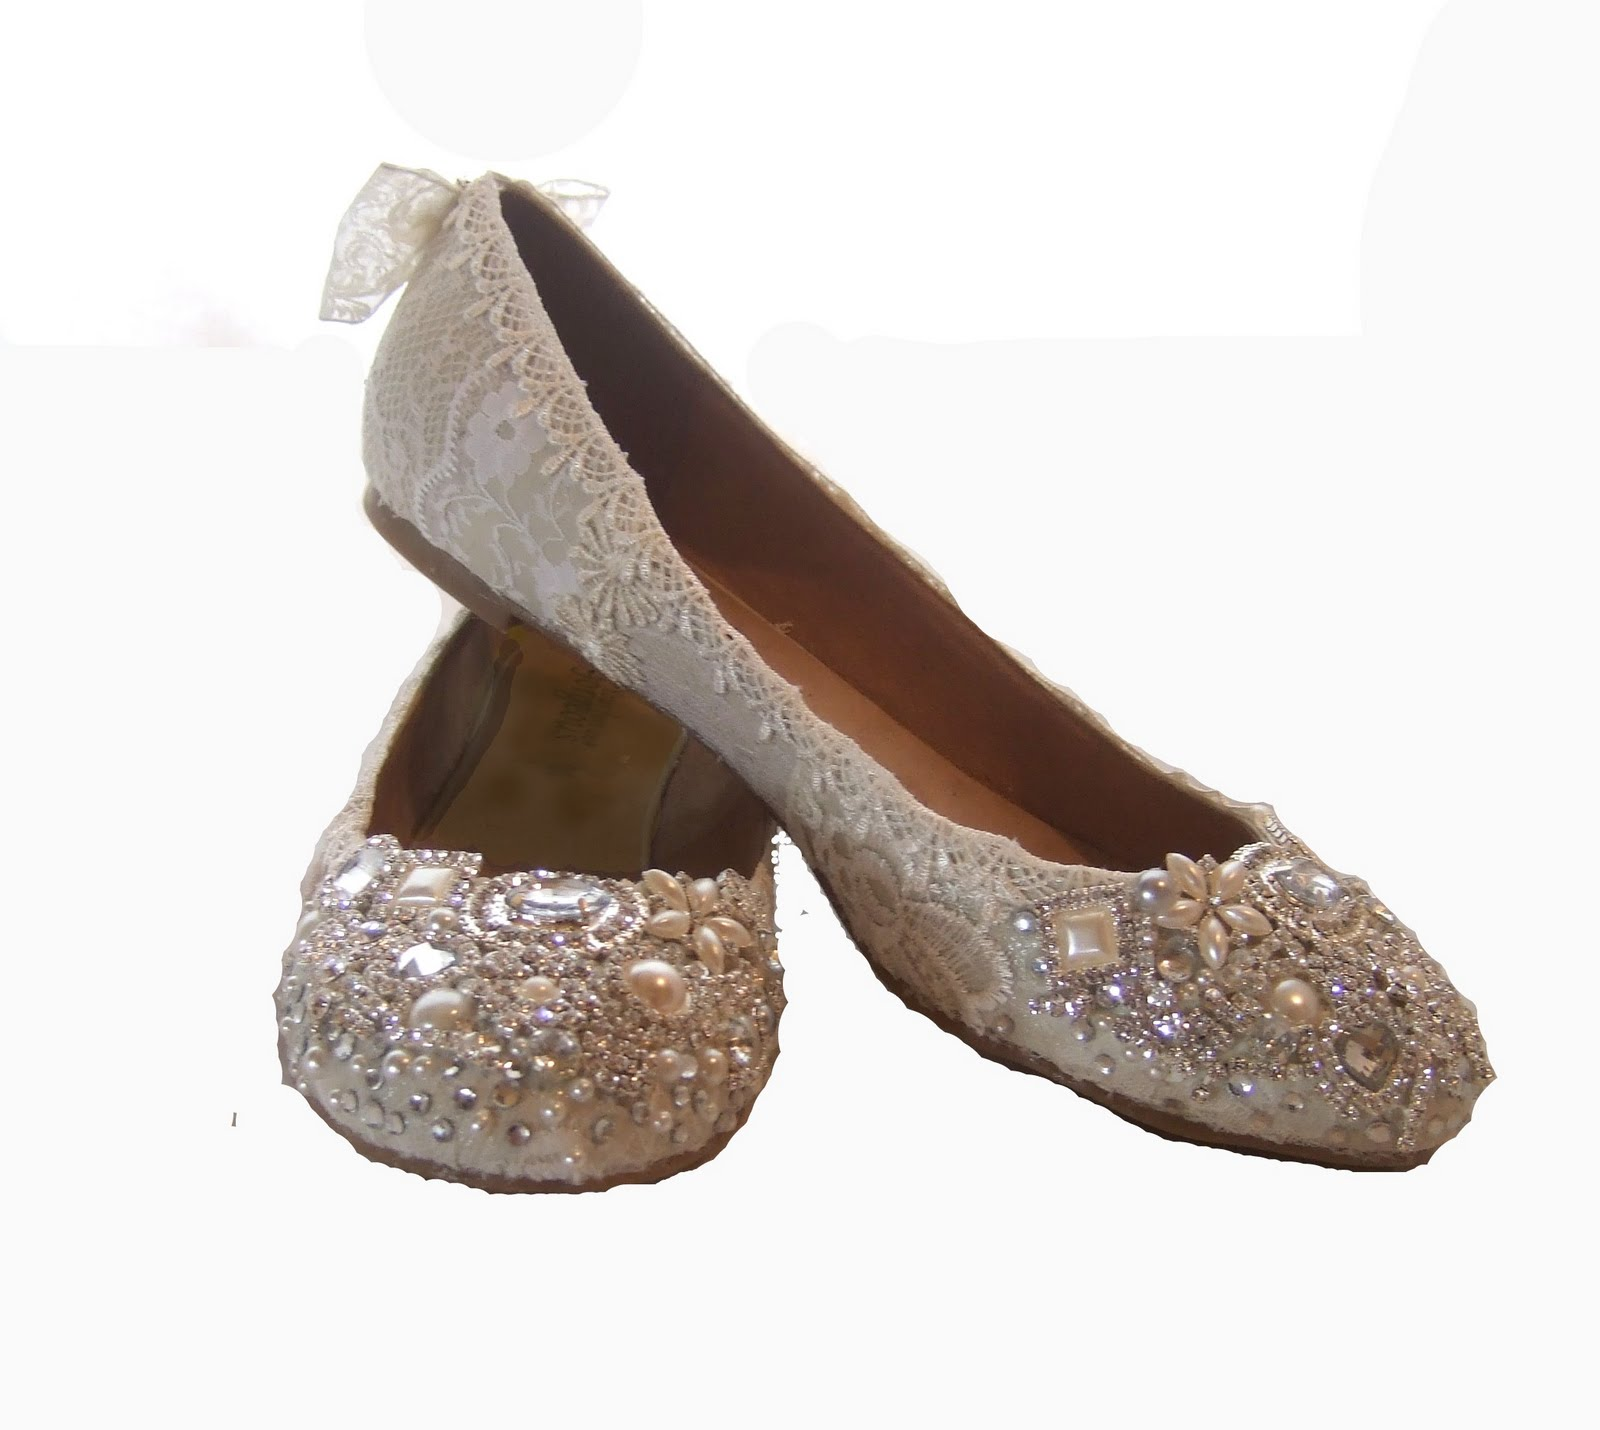 Fabulous In Flats? - The Wedding Shoe Faux-Pas?